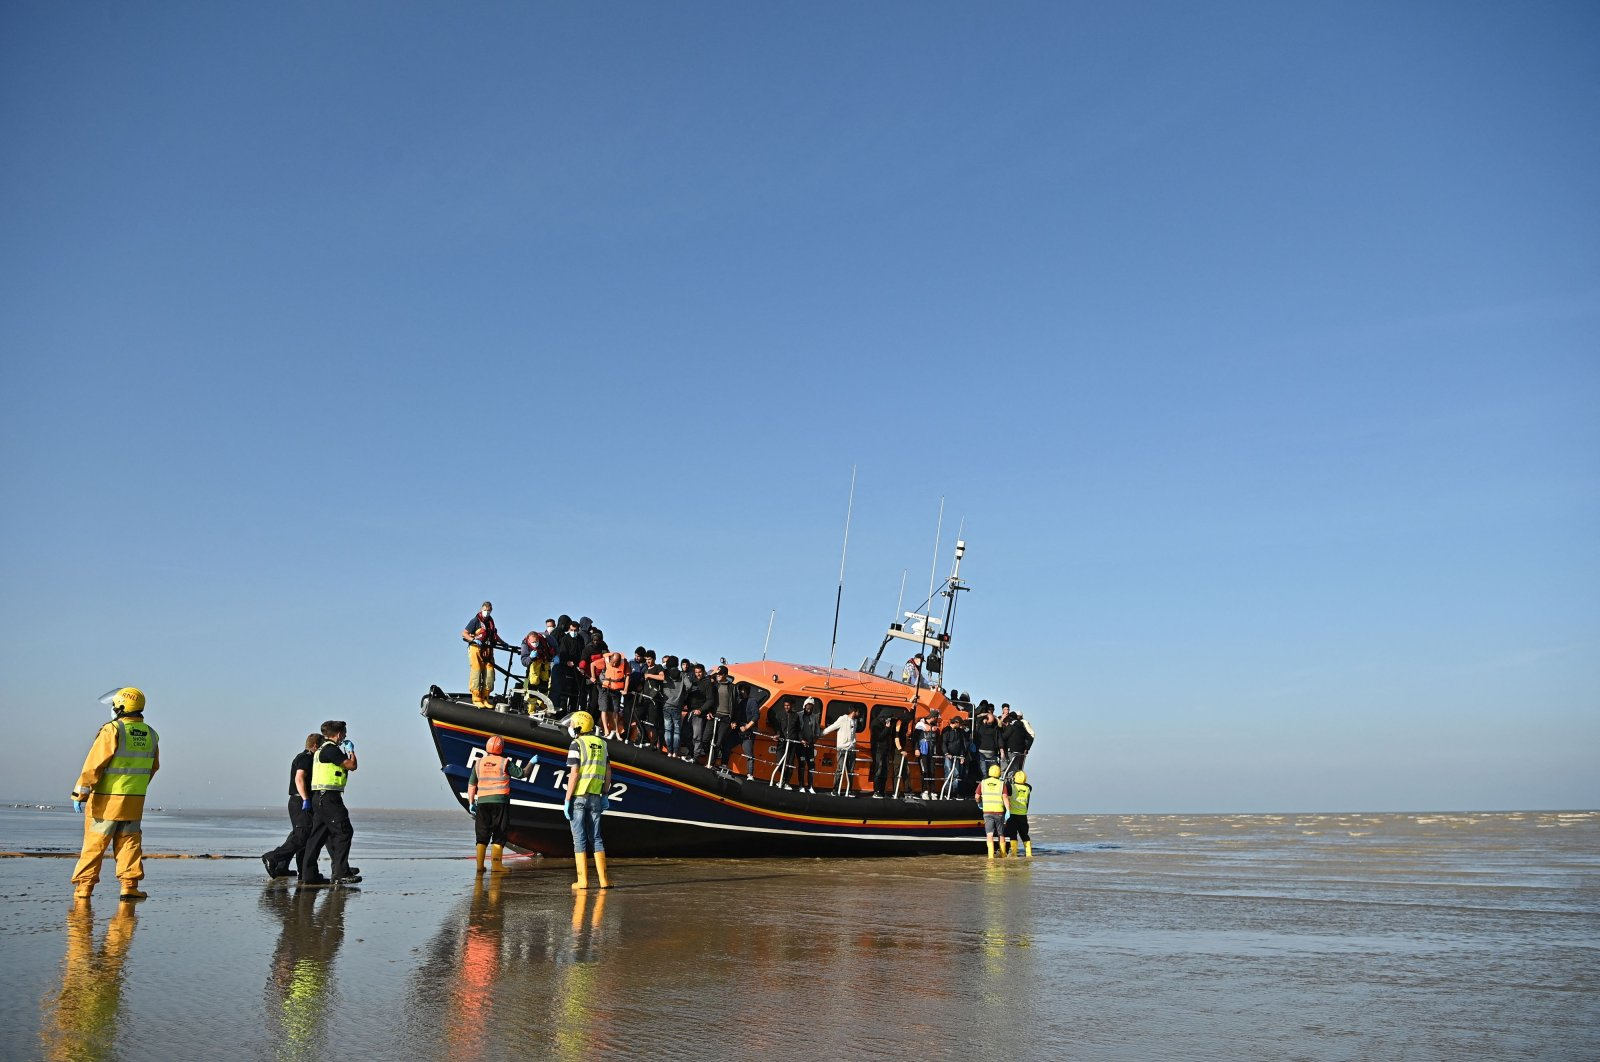 Migrants stand aboard an RNLI (Royal National Lifeboat Institution) lifeboat after being rescued crossing the English Channel at a beach in Dungeness, southeast England, Sept. 7, 2021. (AFP Photo)